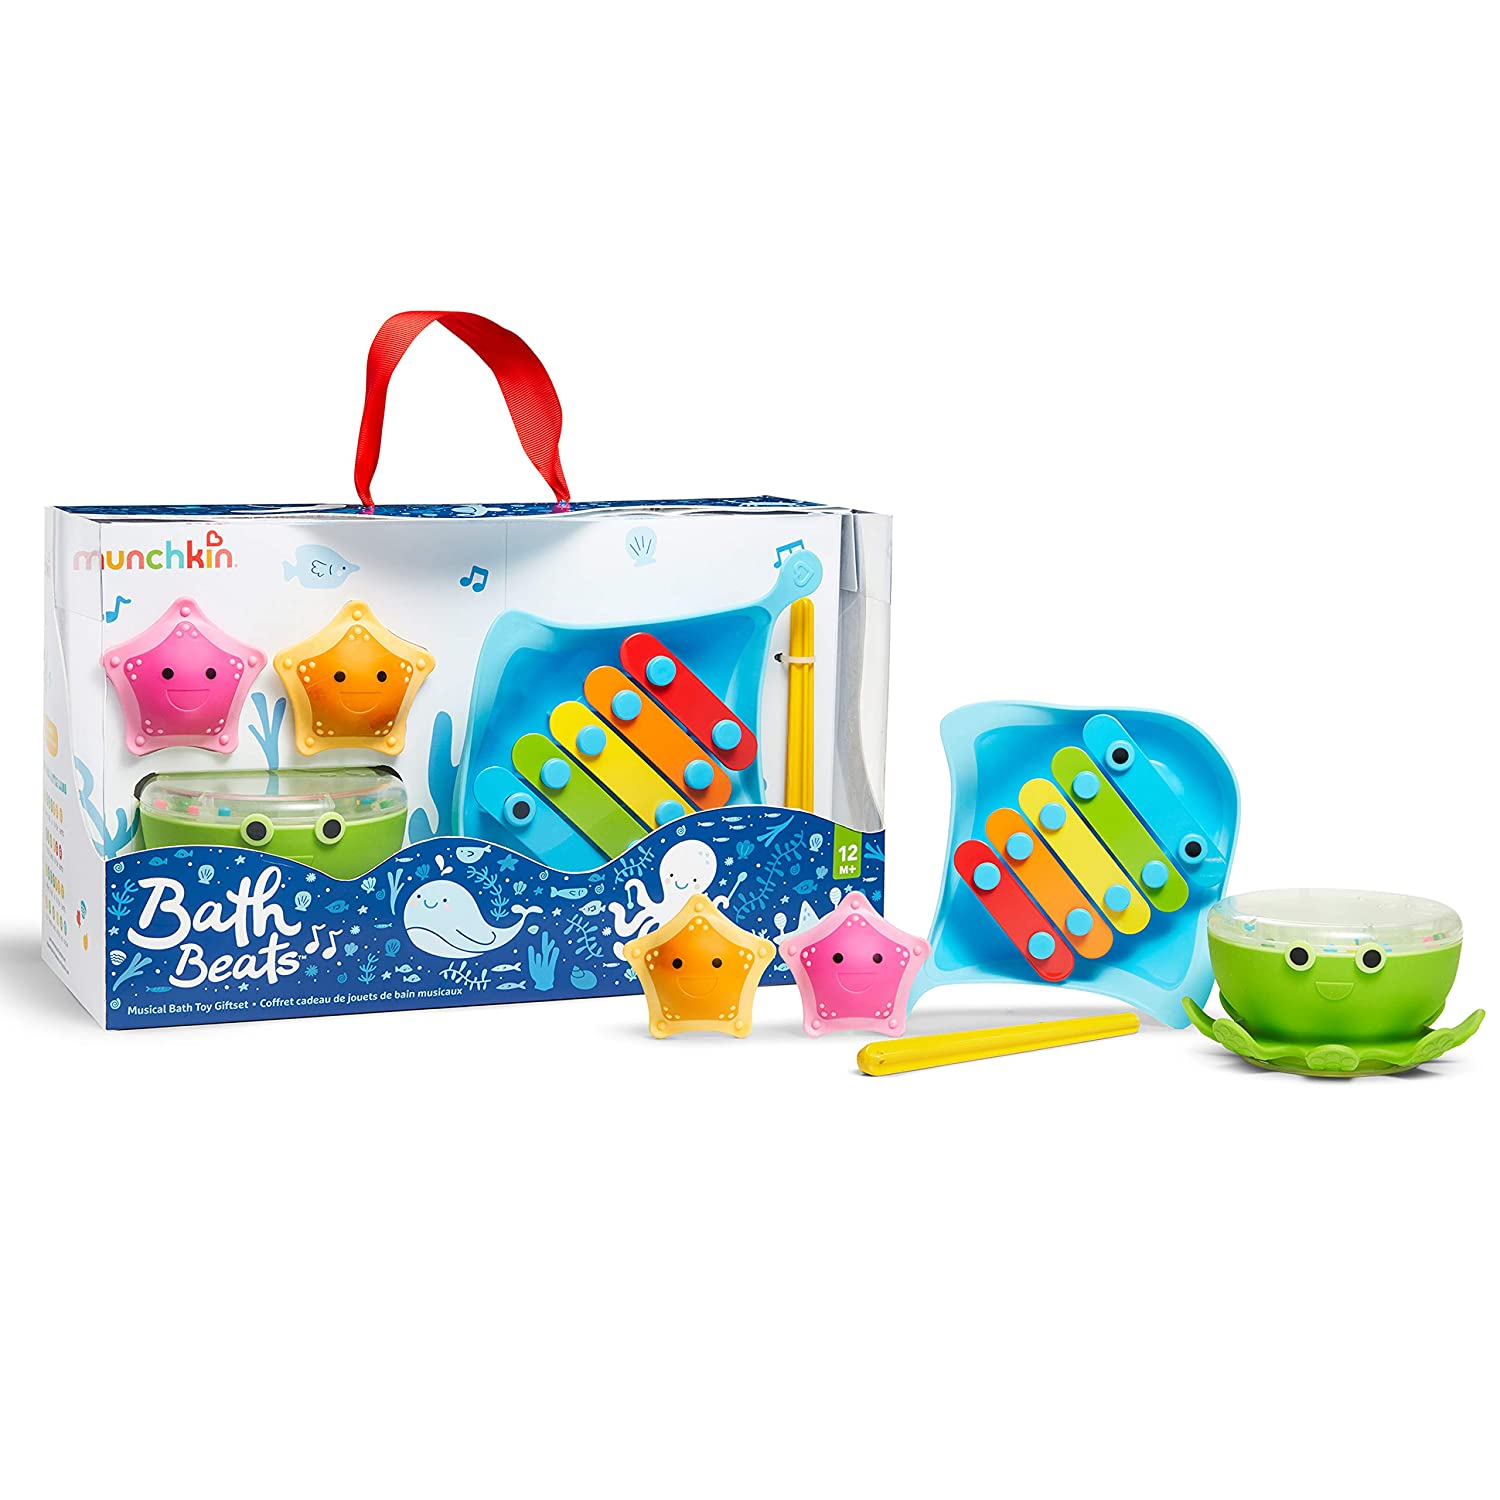 Munchkin Bath Superlatite Beats Musical Toy Gift Includes Xylophon 67% OFF of fixed price Set